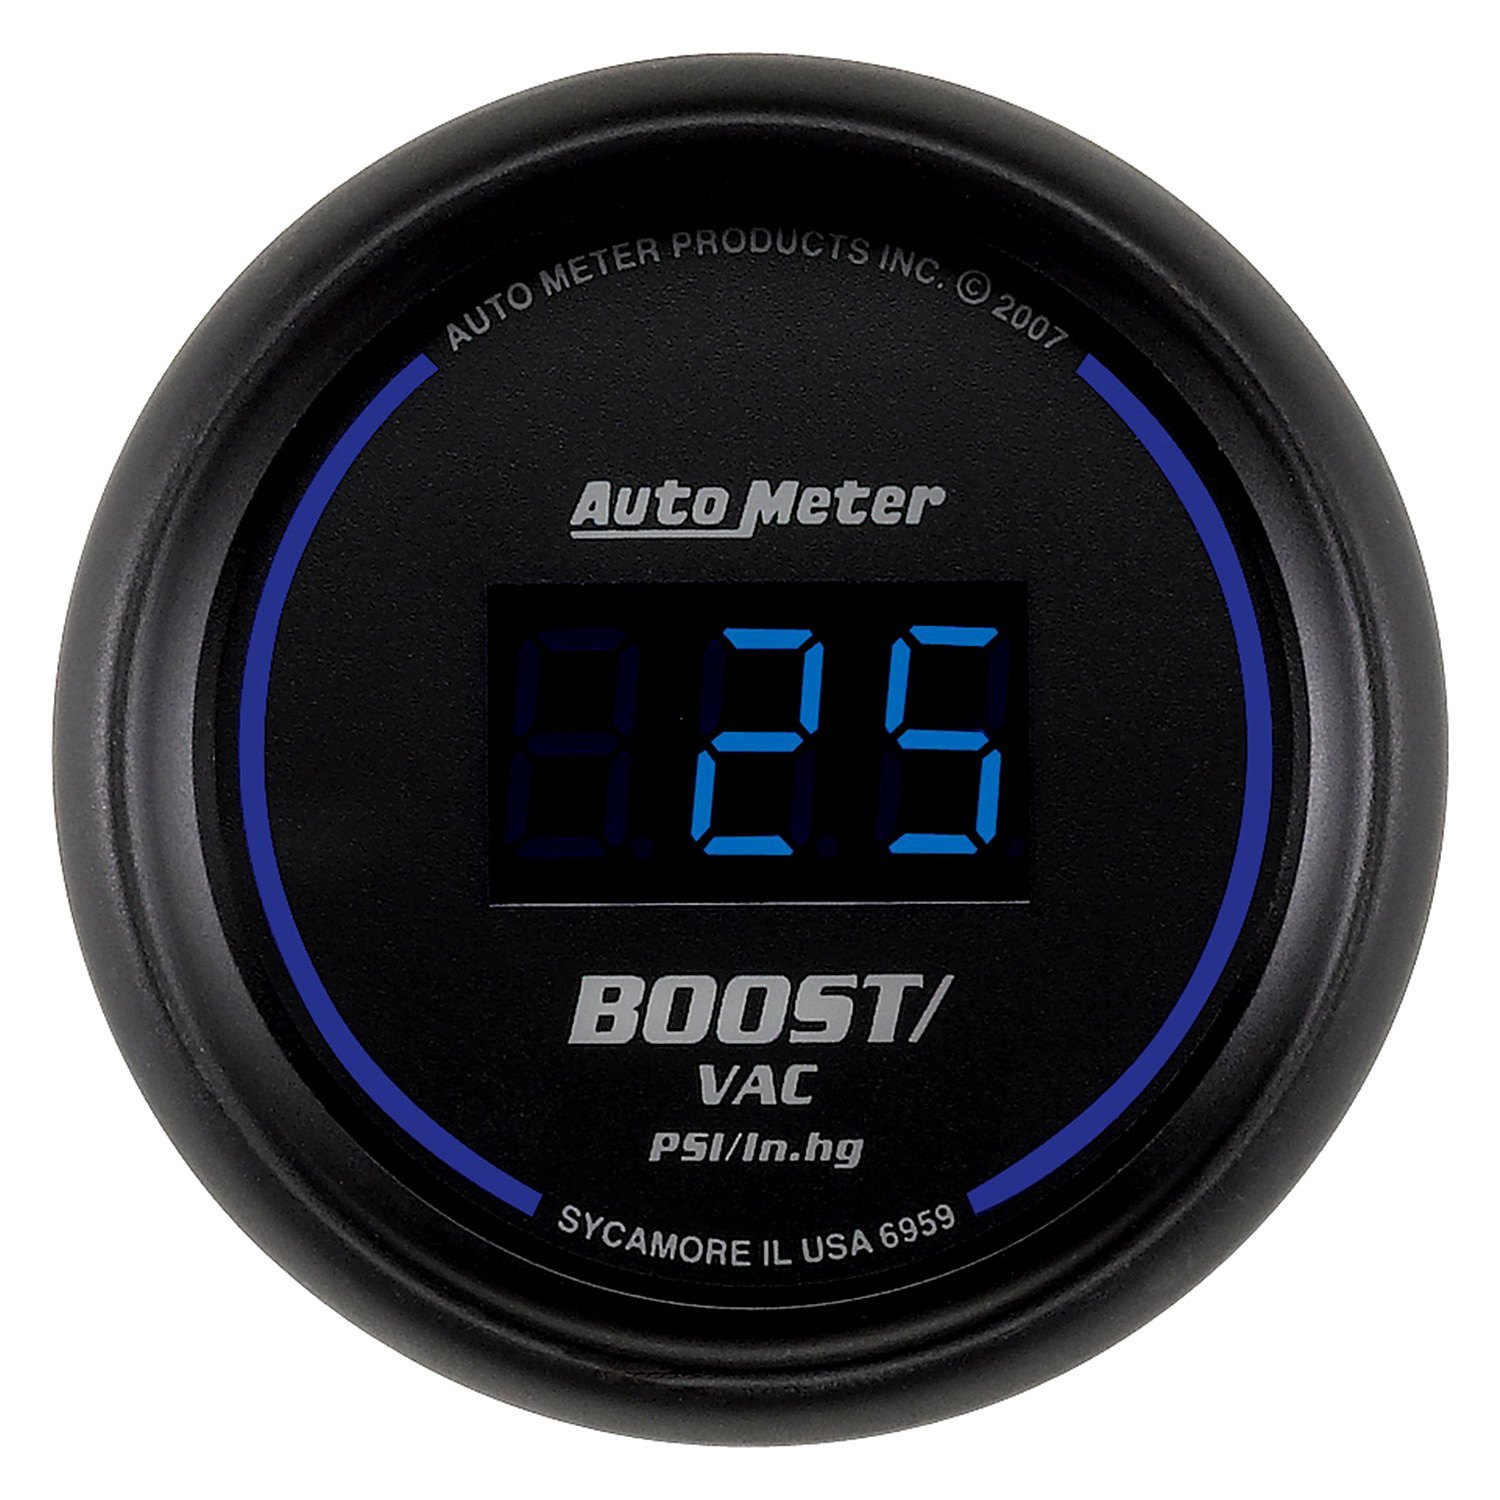 Electronic Gauges For Cars : Auto meter cobalt digital series quot boost